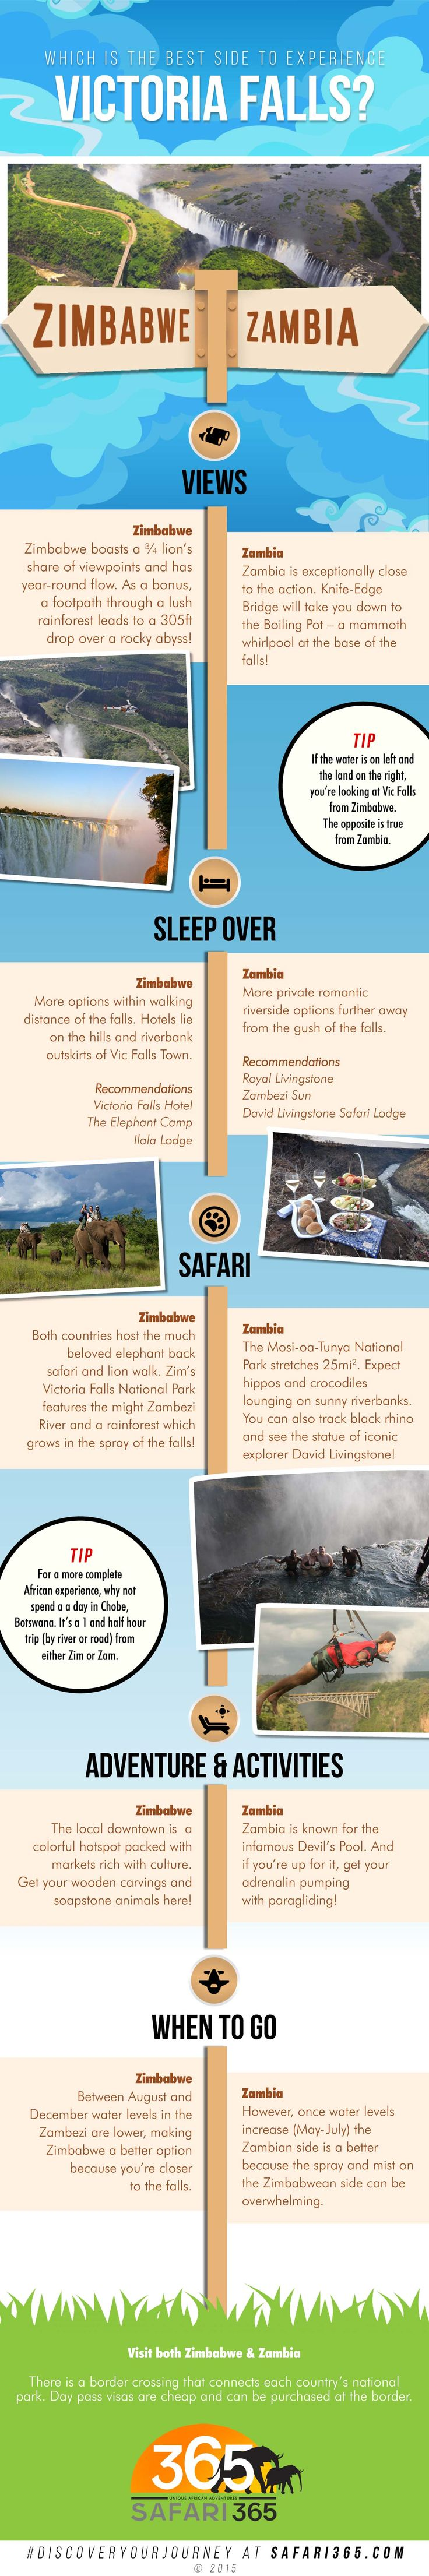 INFOGRAPHIC: Zimbabwe Vs. Zambia. What to know when visiting Victoria Falls. #DiscoverYourJourney